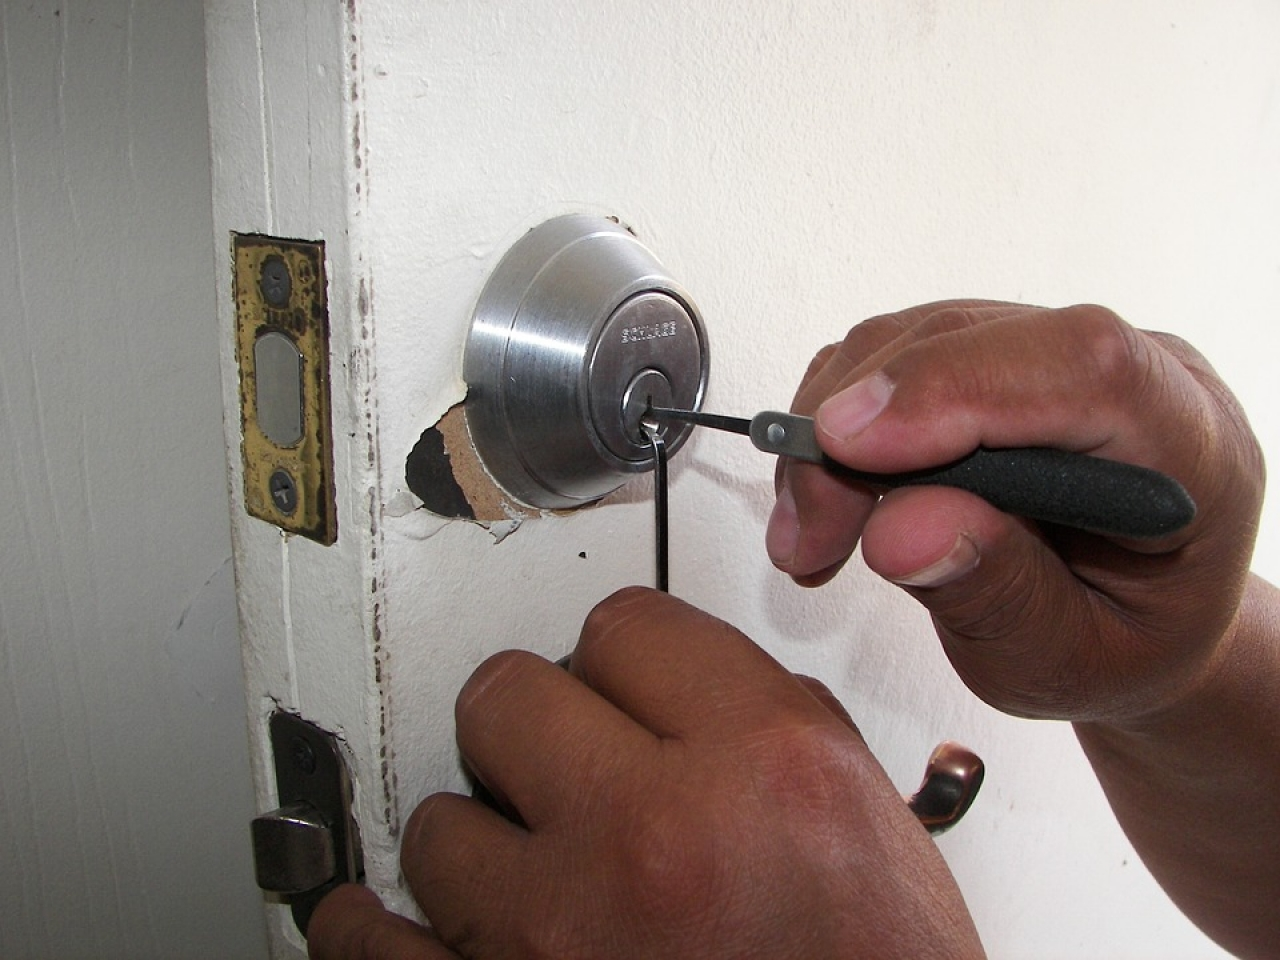 Are You a Locksmith? We Want To Hear From You!